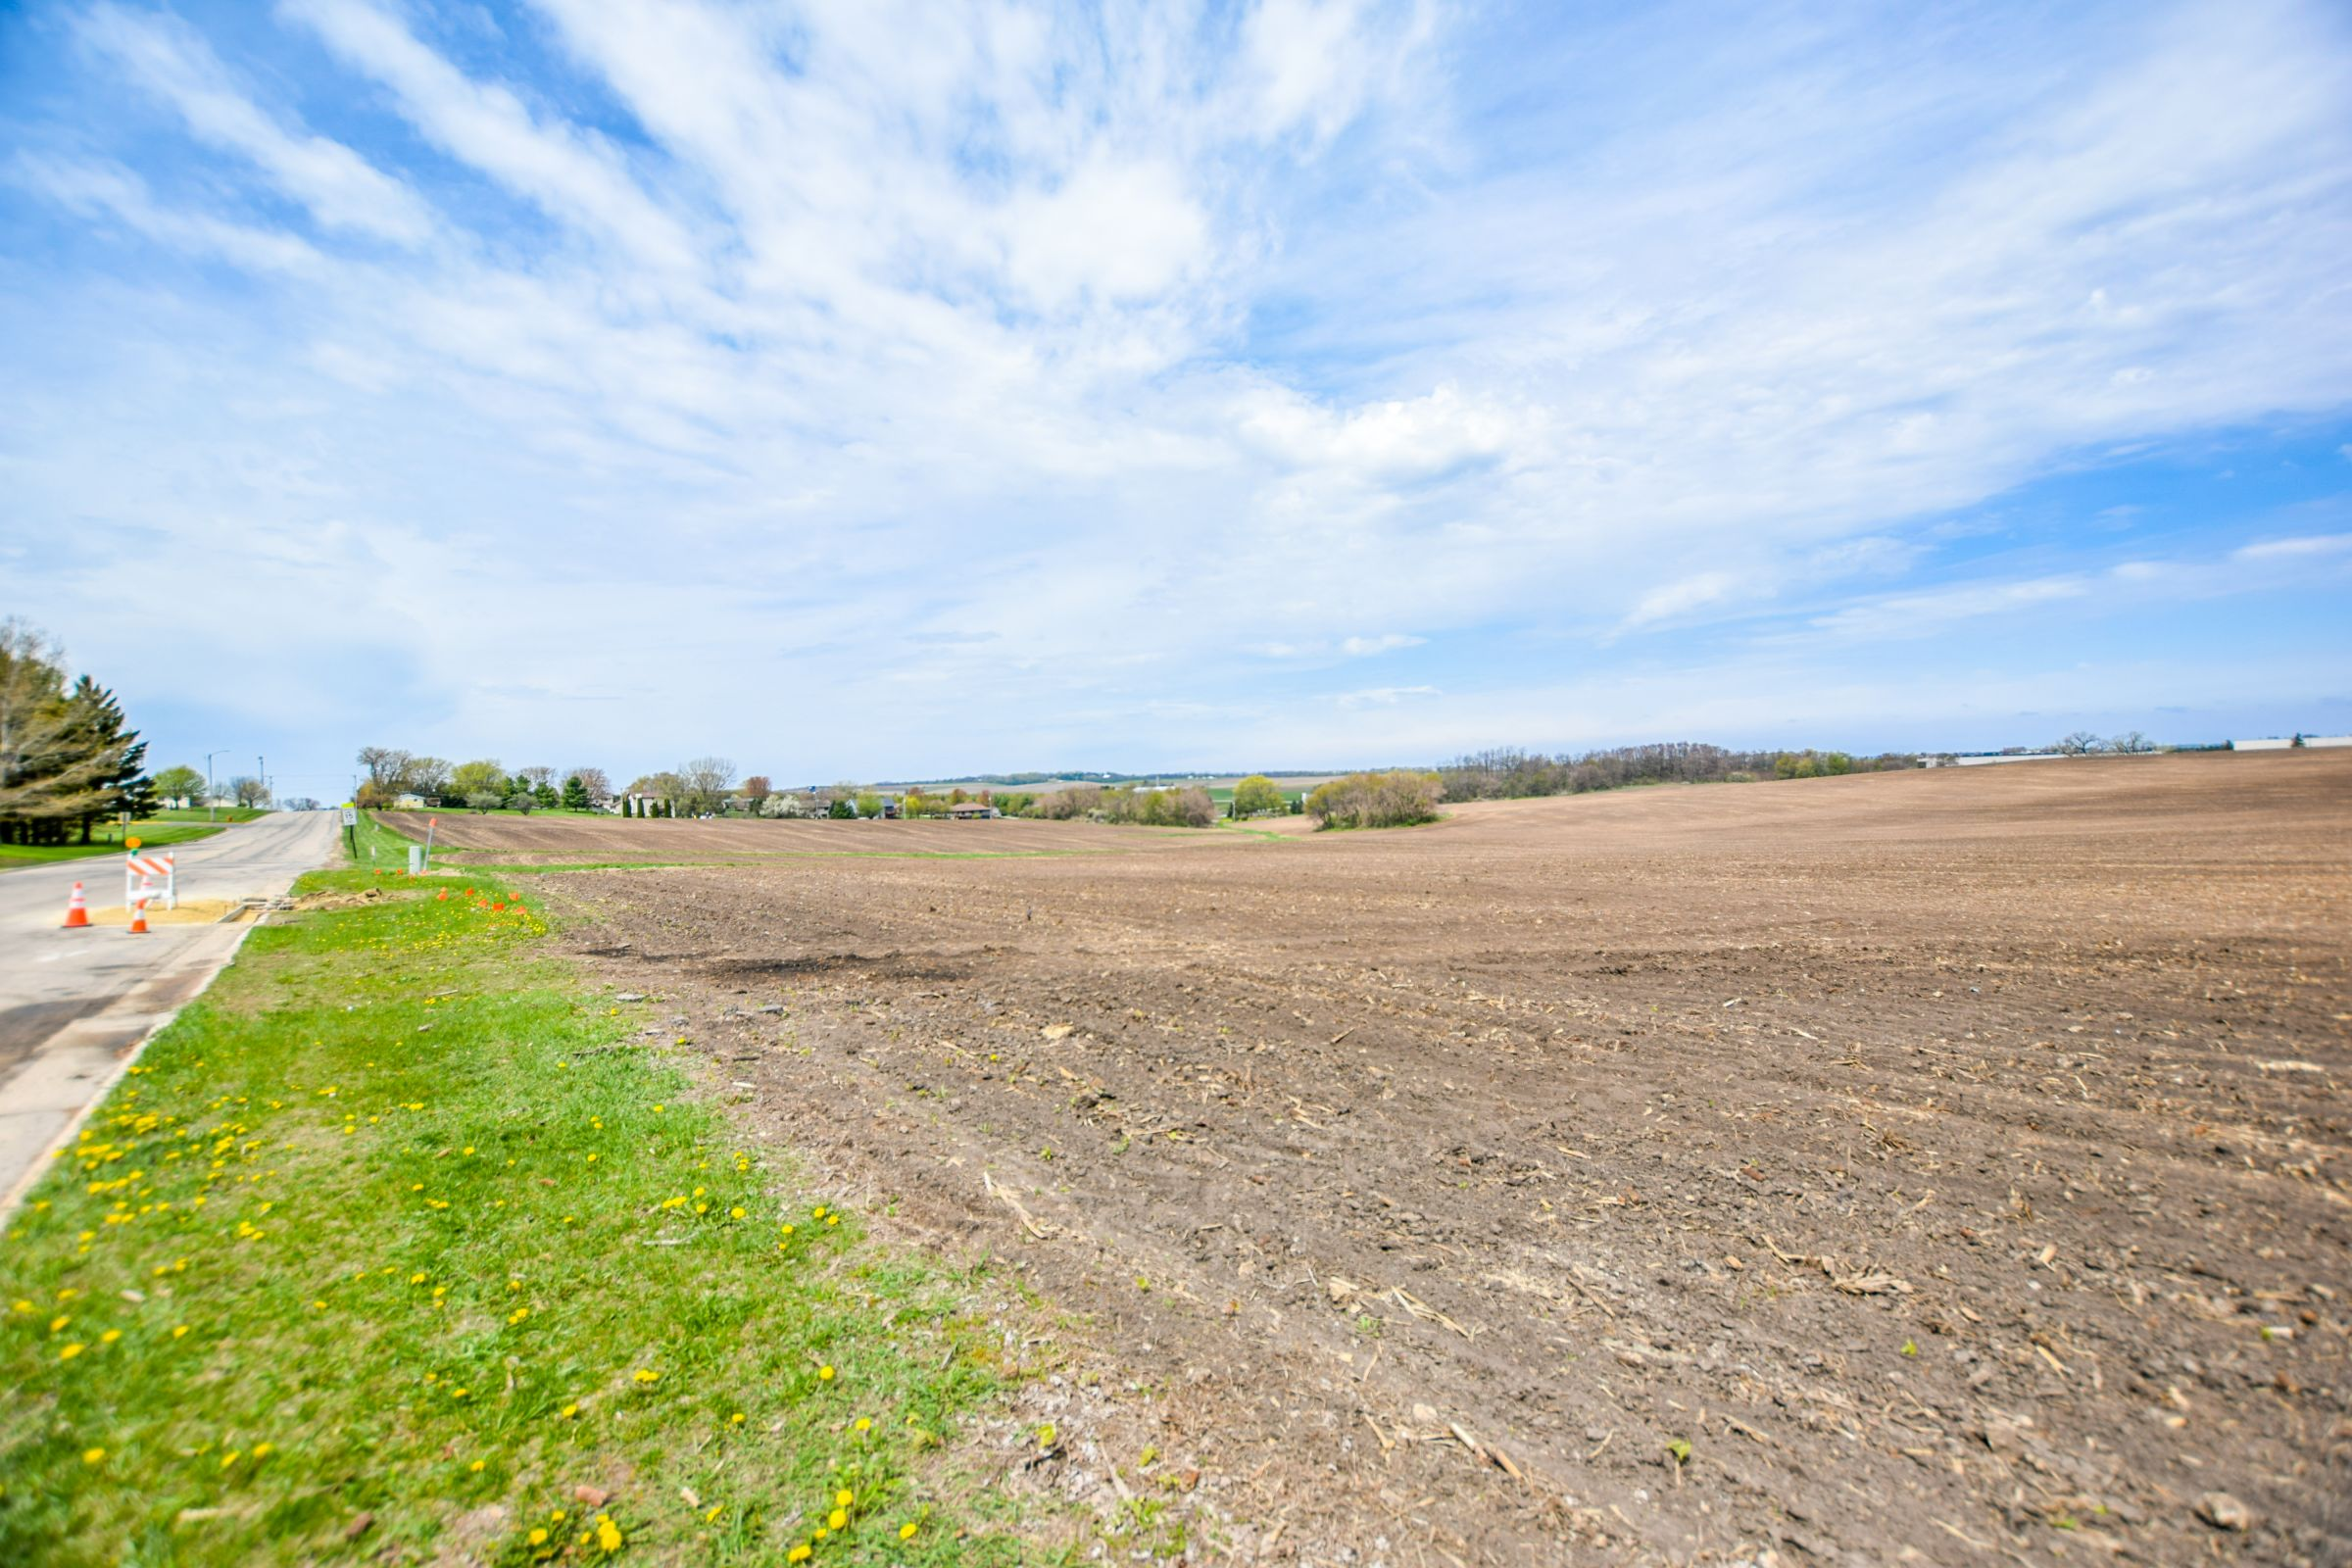 development-land-commercial-iowa-county-wisconsin-152-acres-listing-number-15474-4-2021-05-18-170911.jpg